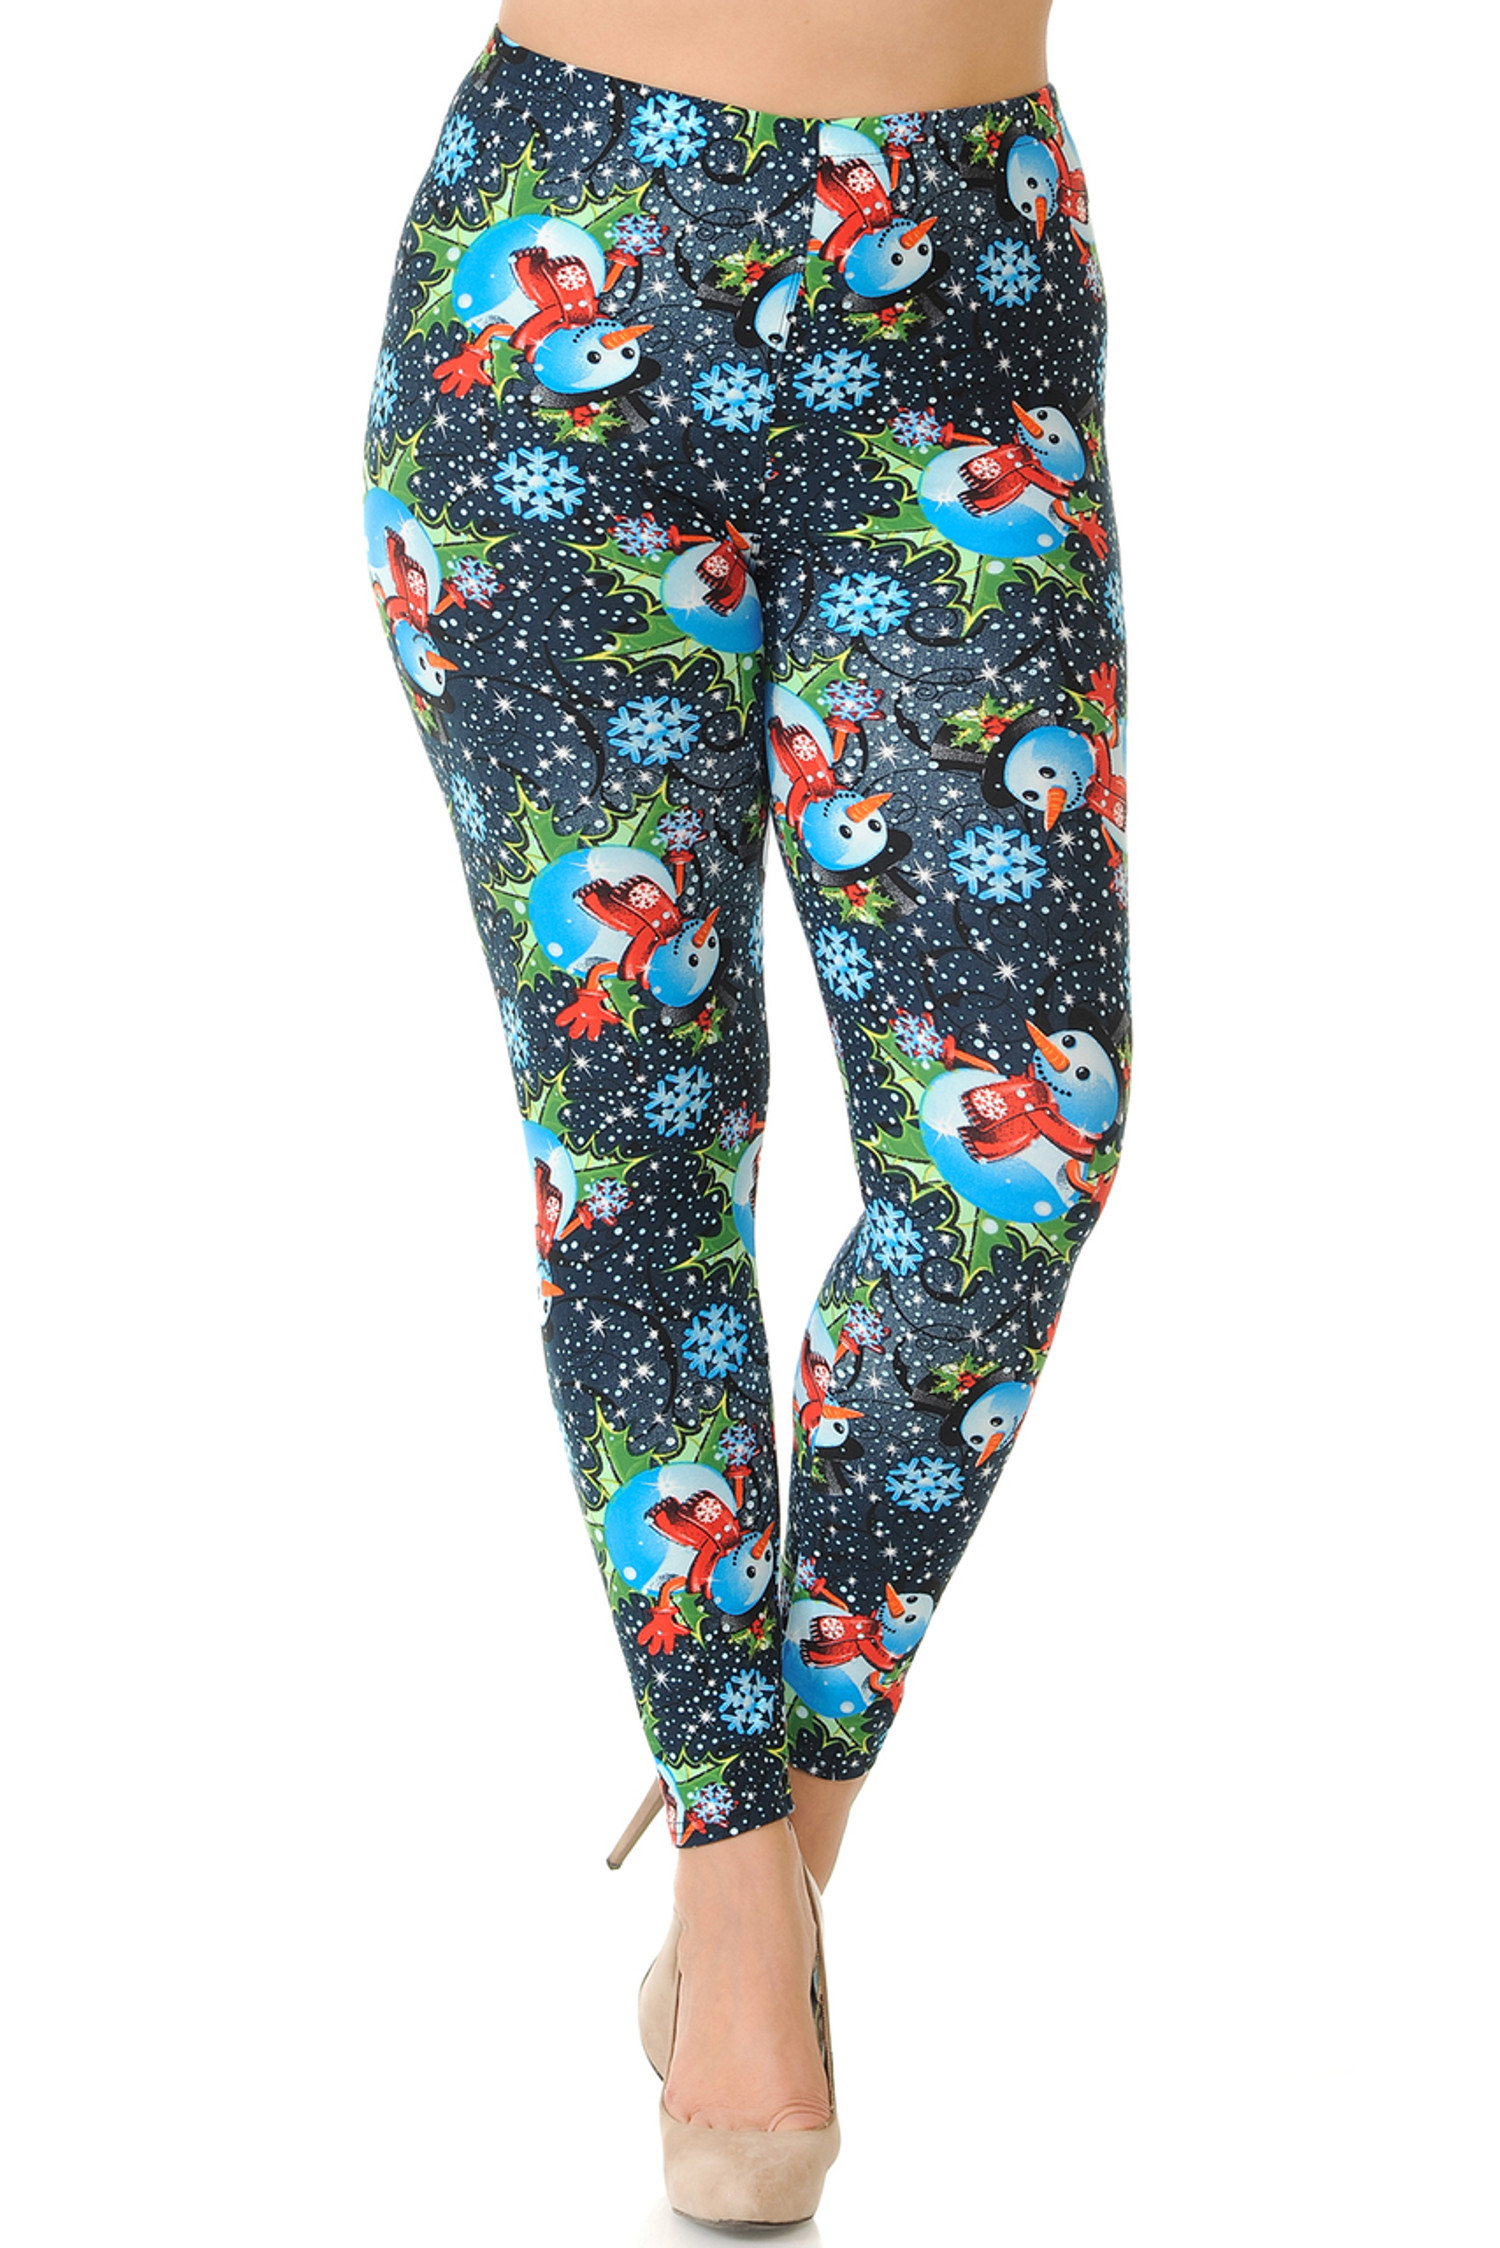 Brushed  Autumn Holiday Garden Plus Size Leggings